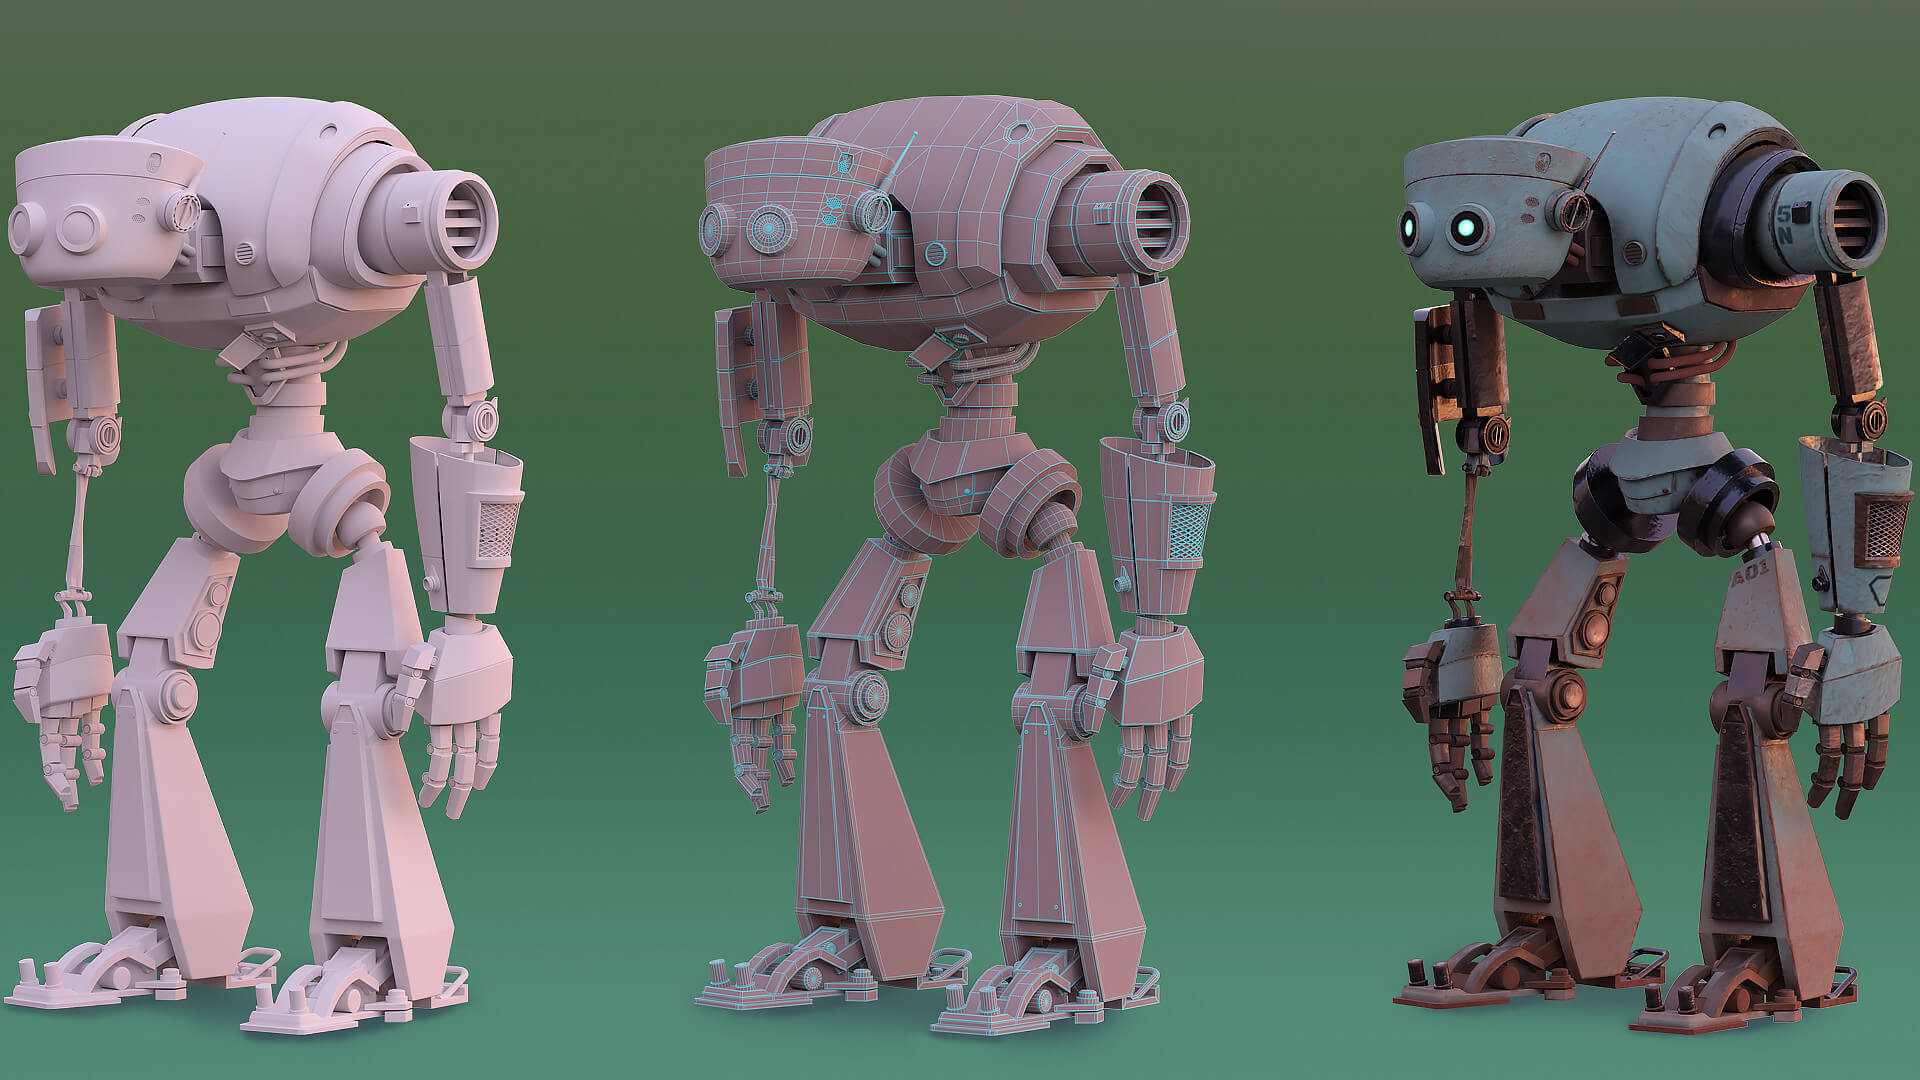 CG model of a robot in three stages of development